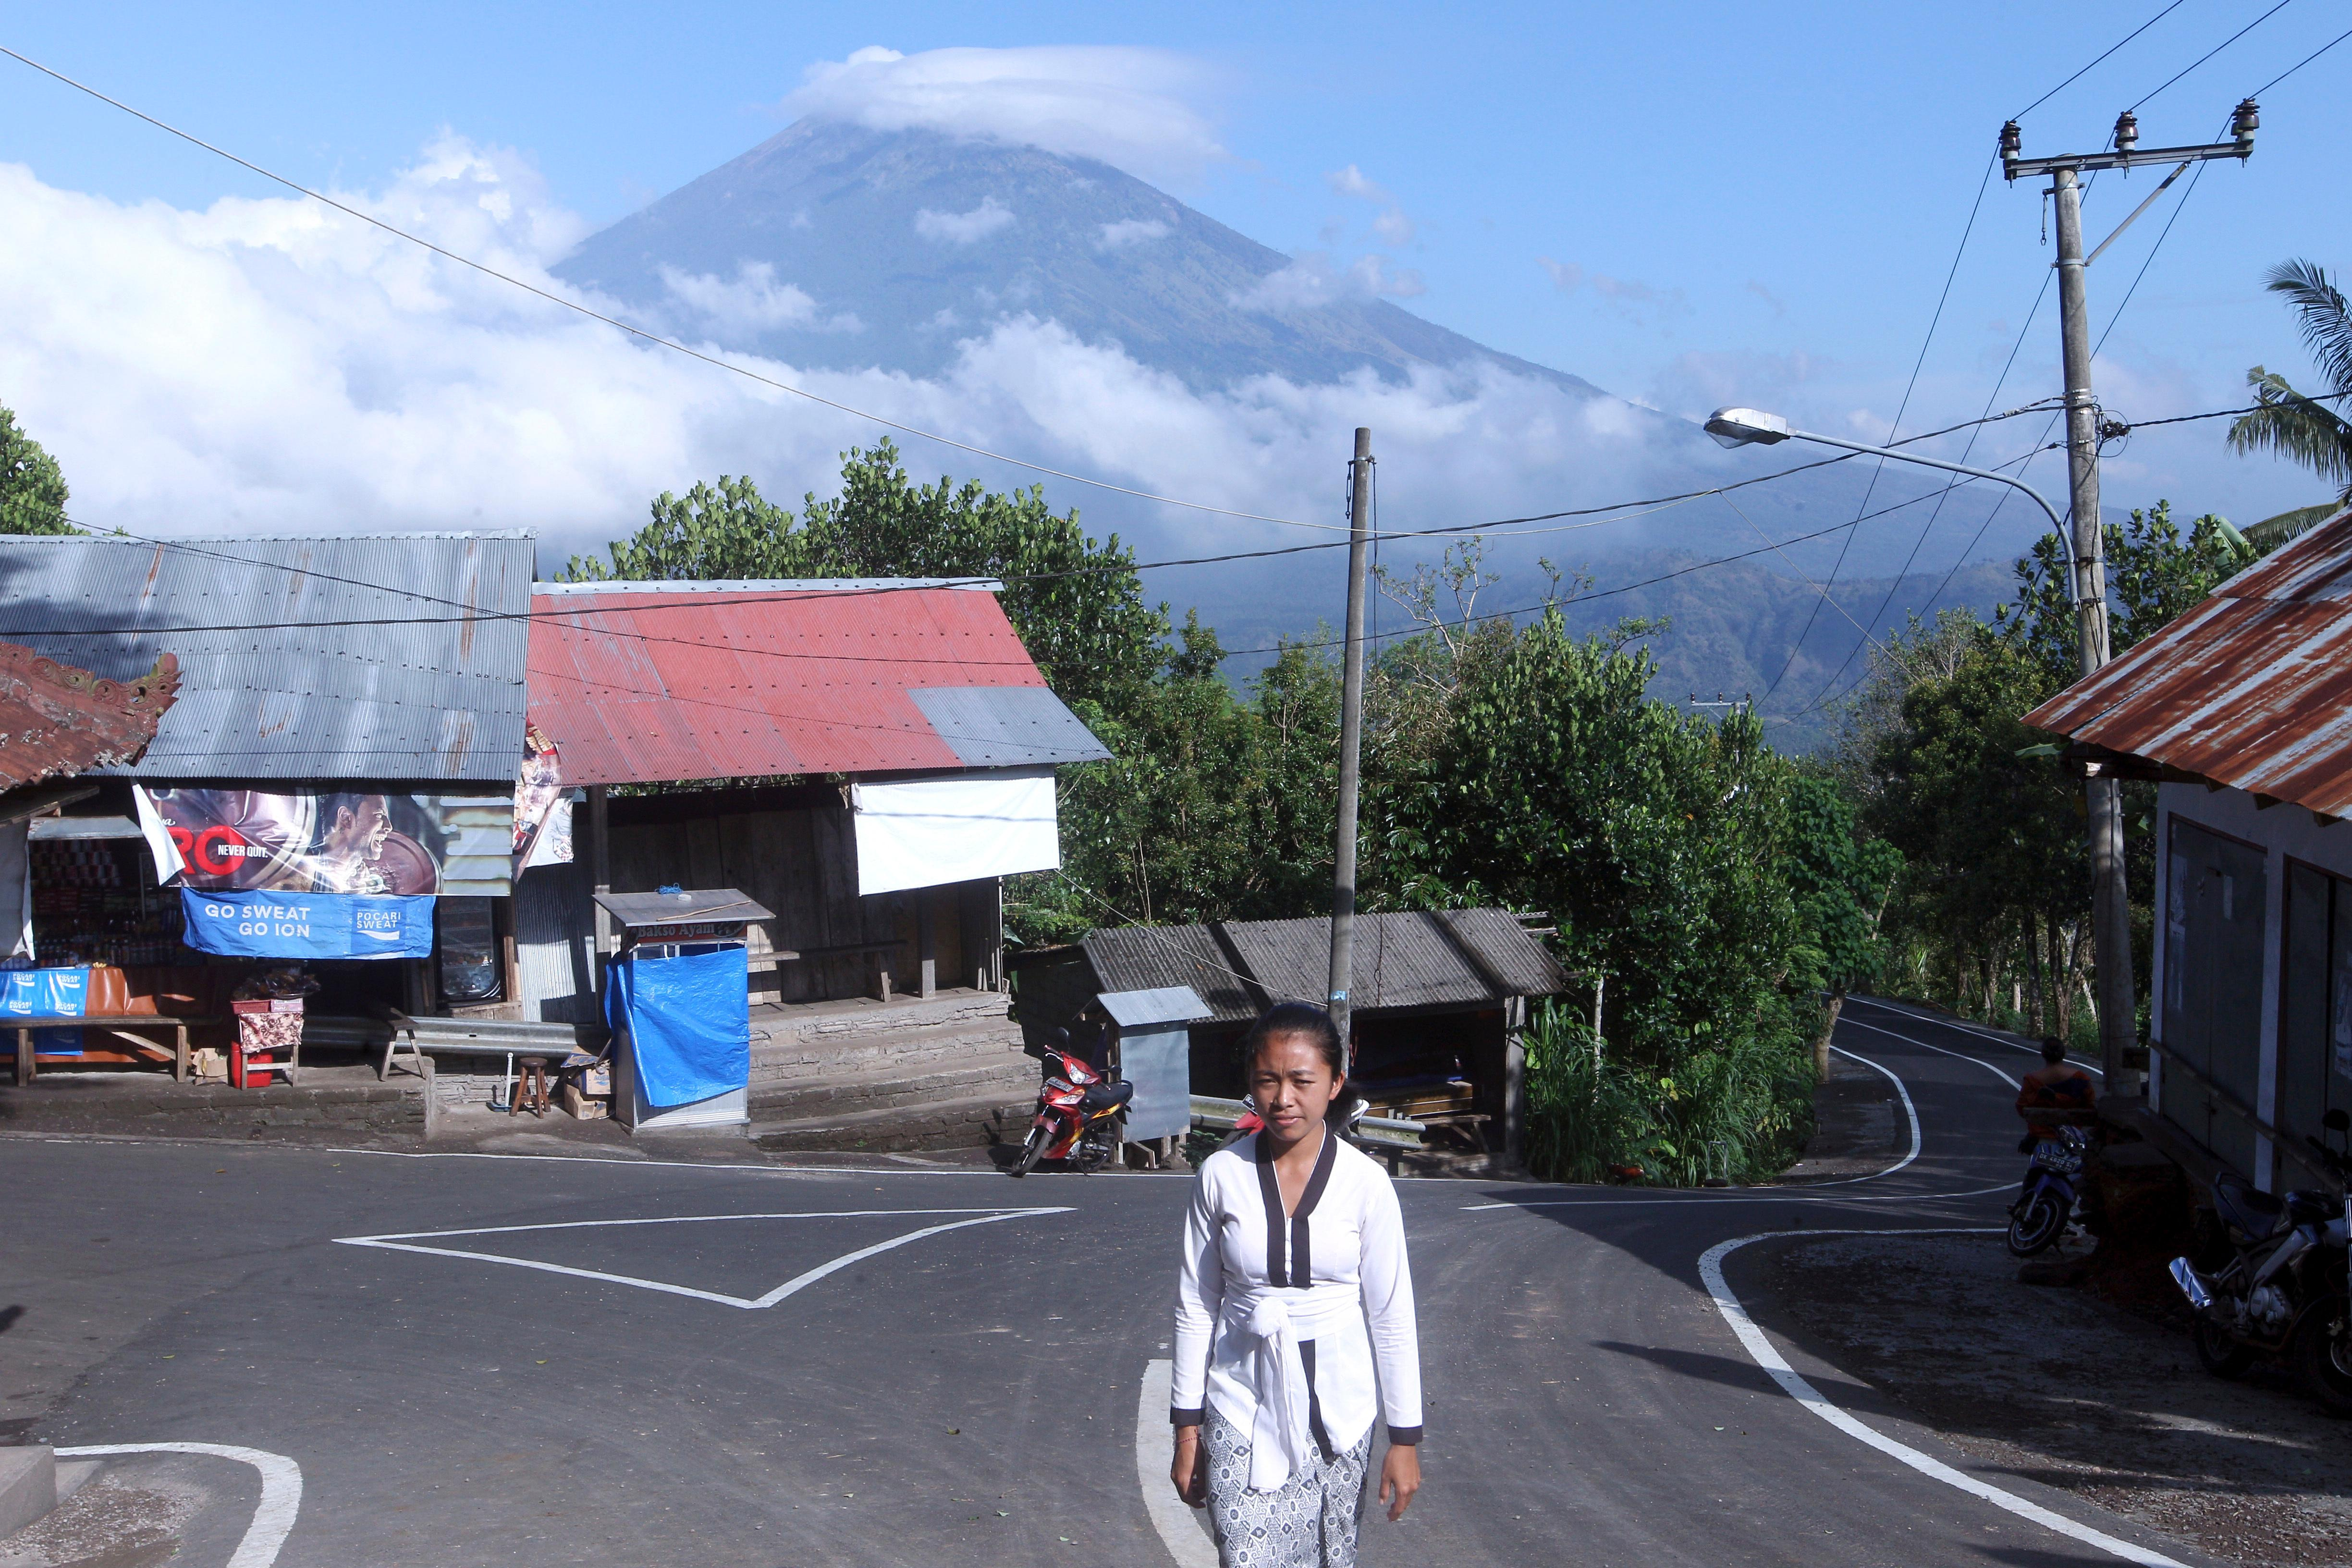 A Balinese woman walks toward a temple as Mount Agung volcano covered with clouds seen in the background at a village in Karangasem, Bali, Indonesia, Tuesday, Sept. 26, 2017. An increasing frequency of tremors from the volcano indicates magma is continuing to move toward the surface and an eruption is possible, a disaster agency official said Tuesday. Tourists are cutting short their stay to the island, where an eruption would force the airport to close and strand thousands. (AP Photo/Firdia Lisnawati)